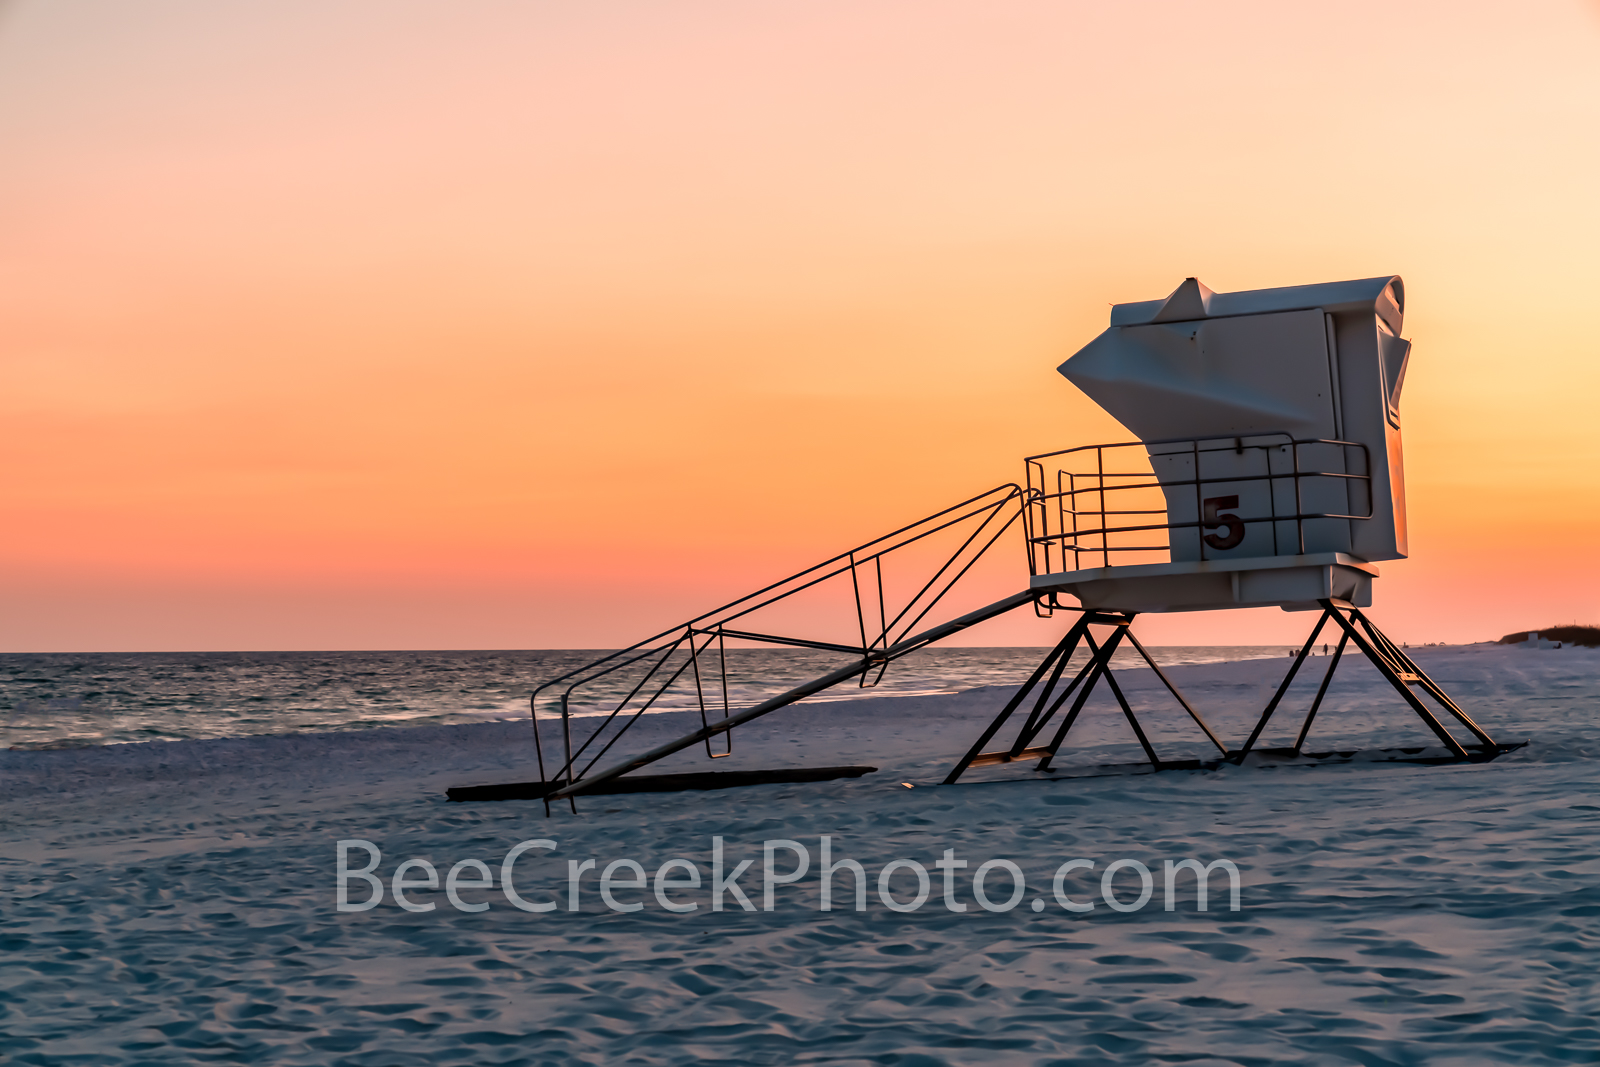 pensacola, silouette, sunset, beach scene, florida resort, beach, toursit, beaches, pensacola beaches, florida panhandle, florida beaches, the emerald coast, travel, seascape, seashore,